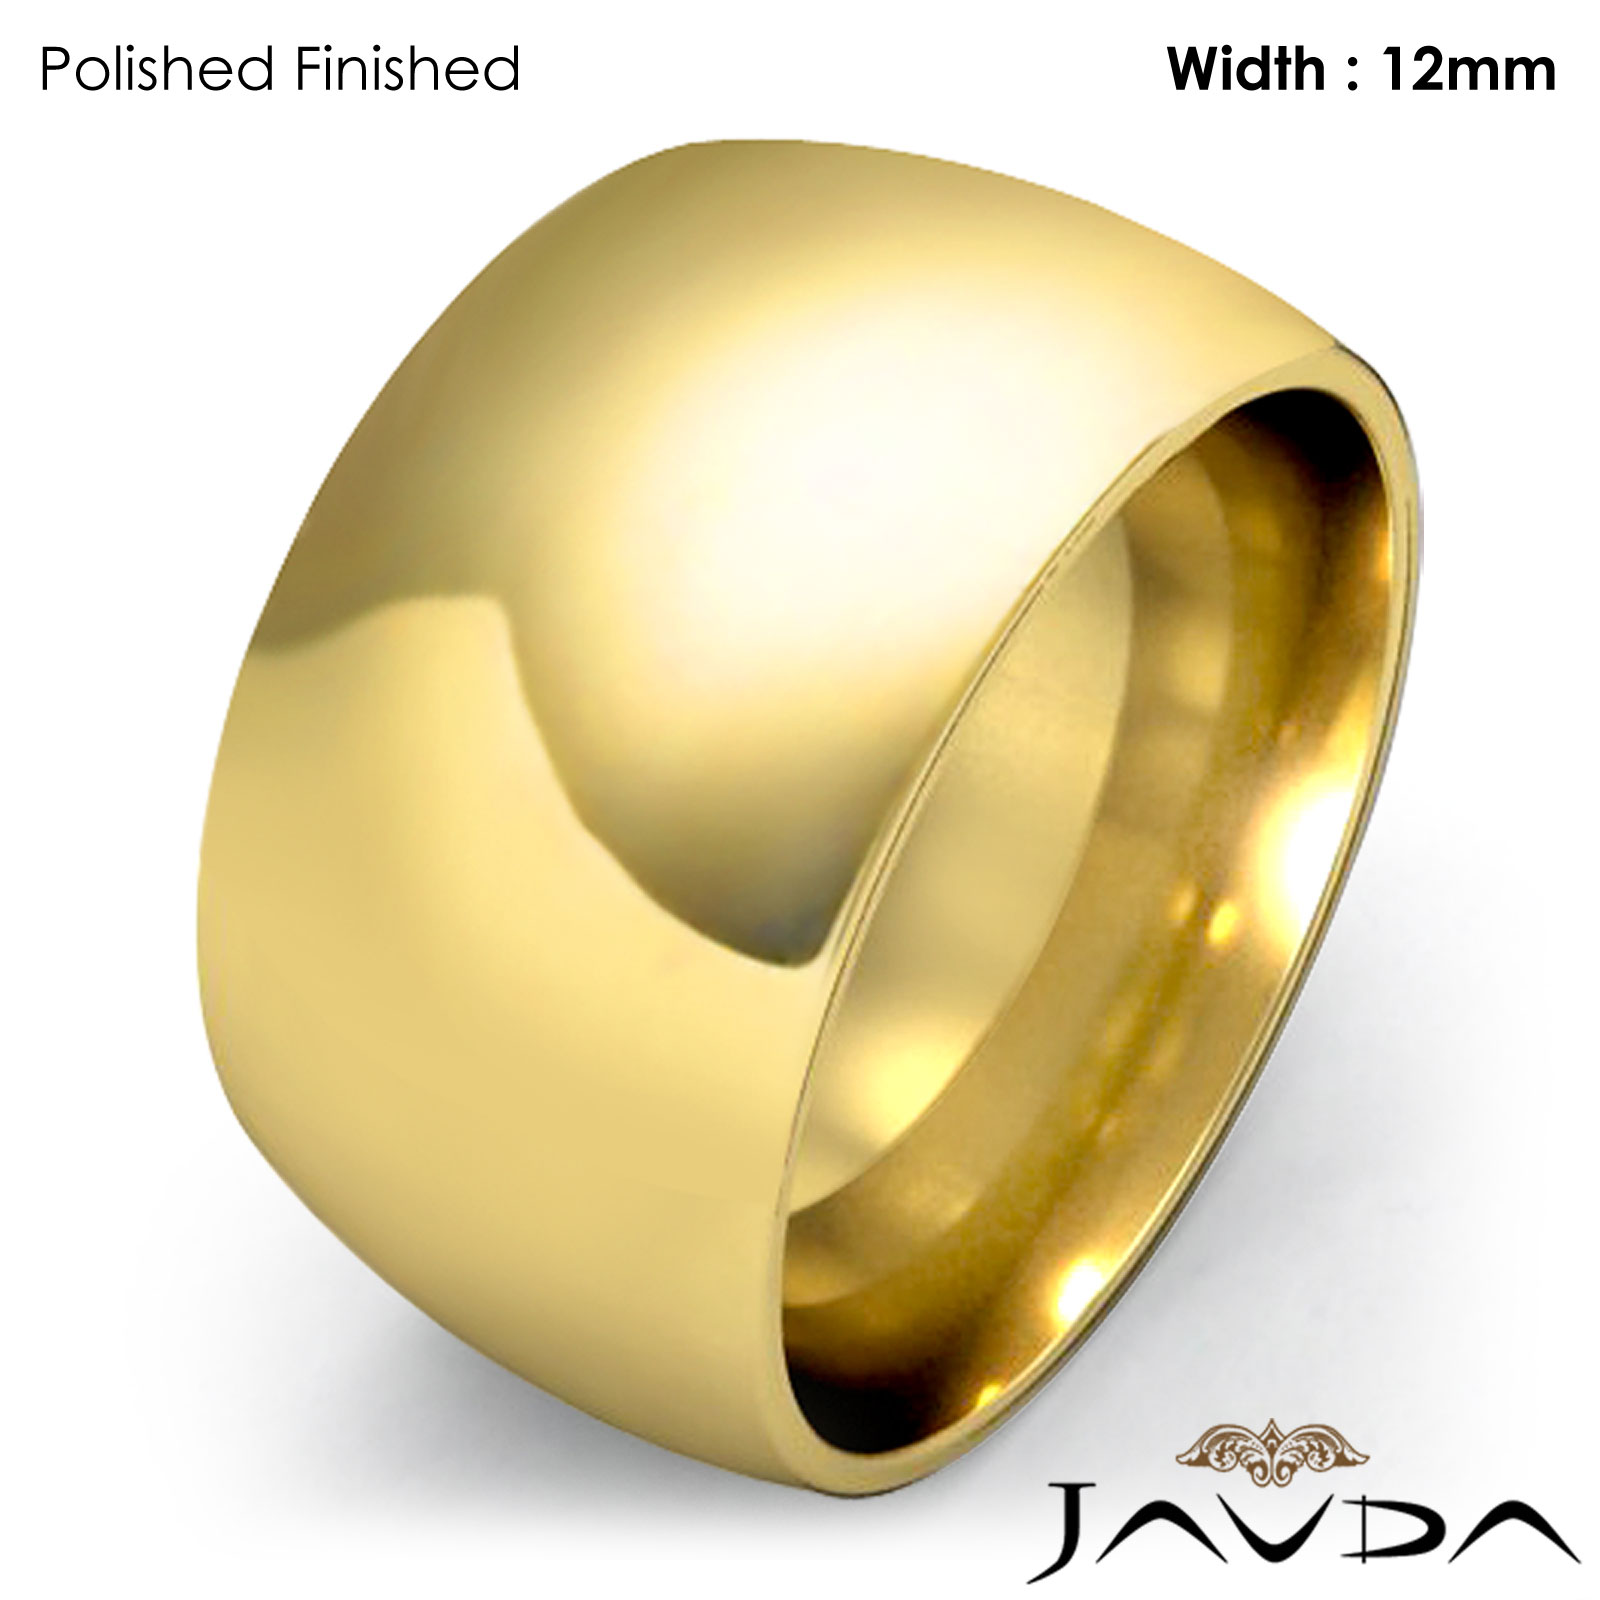 ip yellow high walmart band finish s gold rings wedding polish real with com women keepsake